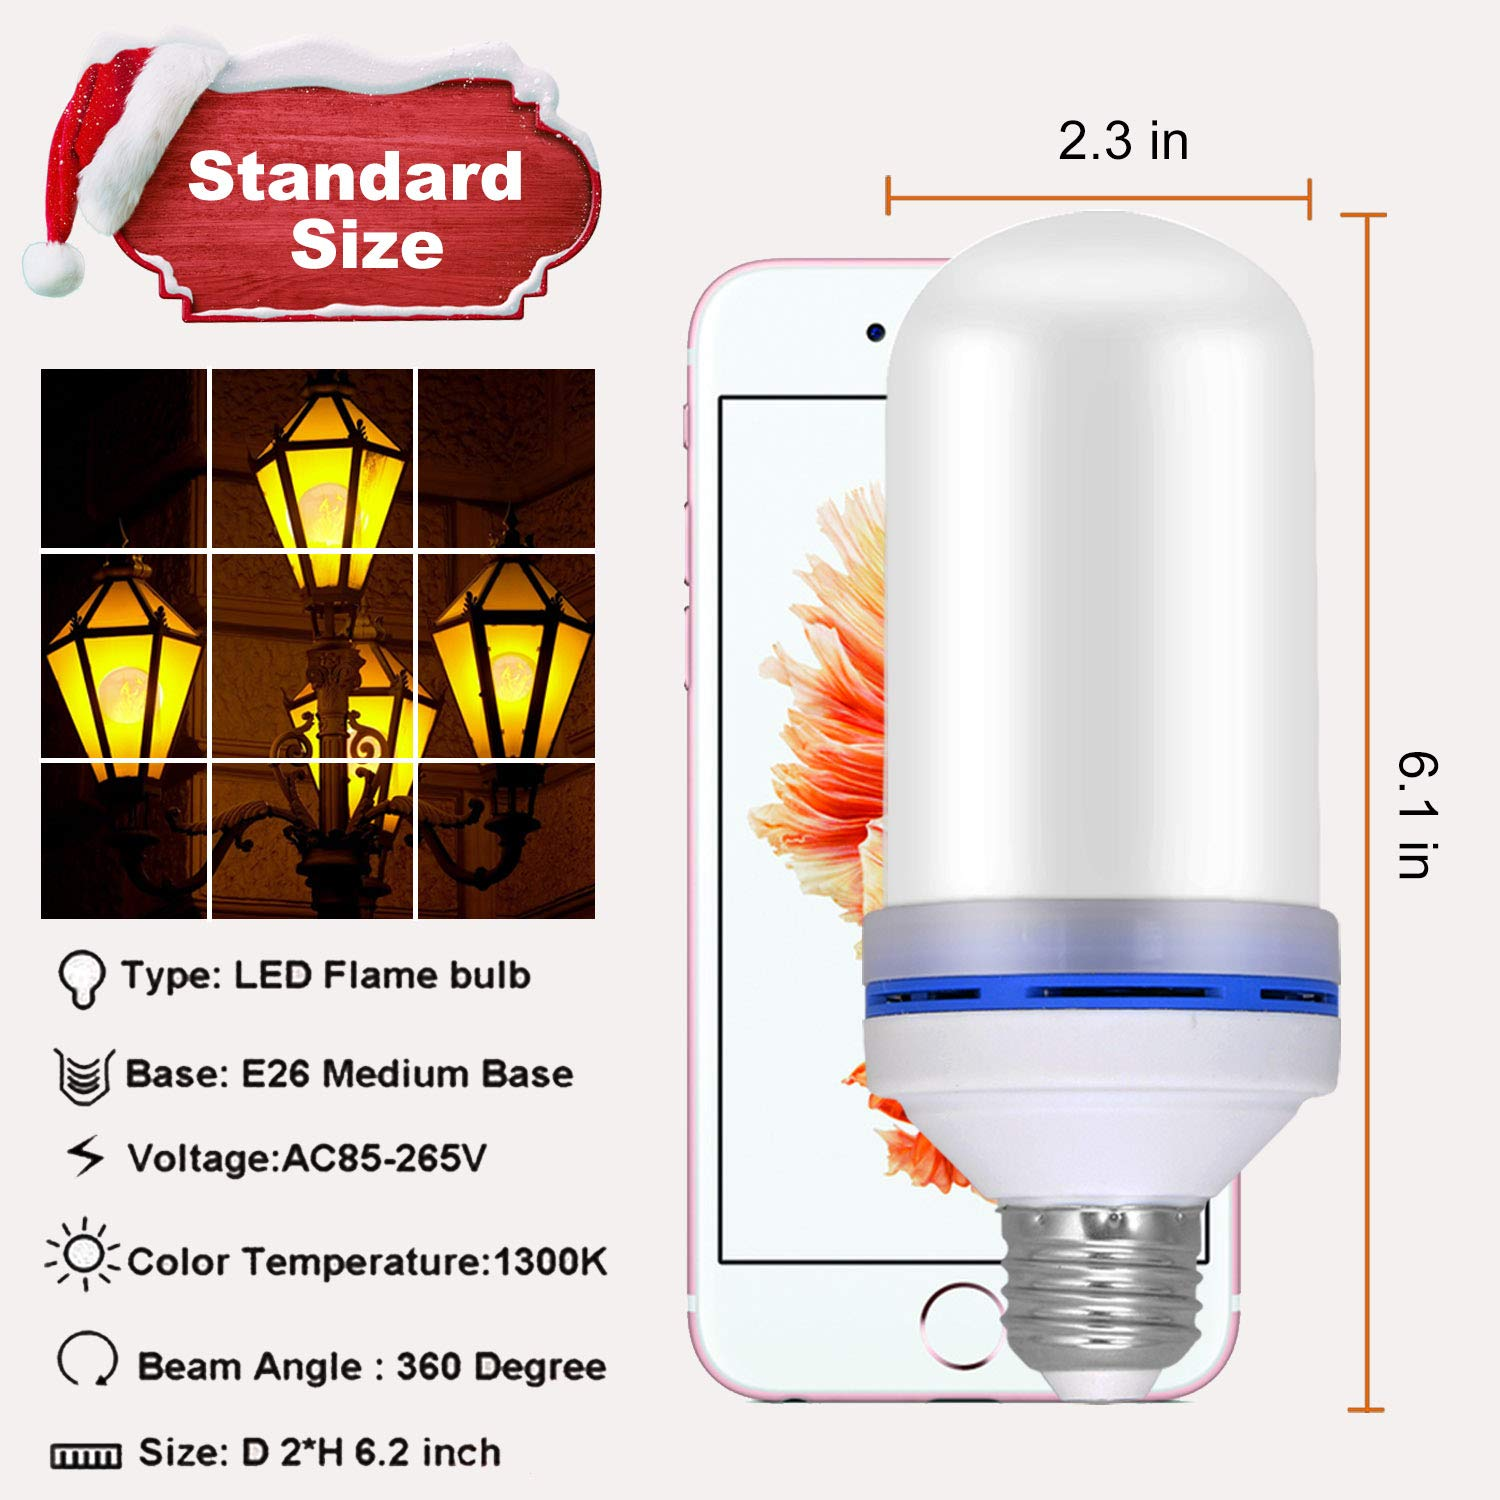 Flame Light Bulb, E26 LED Flickering Effect Light Bulbs,105pcs 2835 LED Beads Simulated Decorative Light Atmosphere Lighting Vintage Flaming Light Bulb for Bar,Home,Festival Decoration